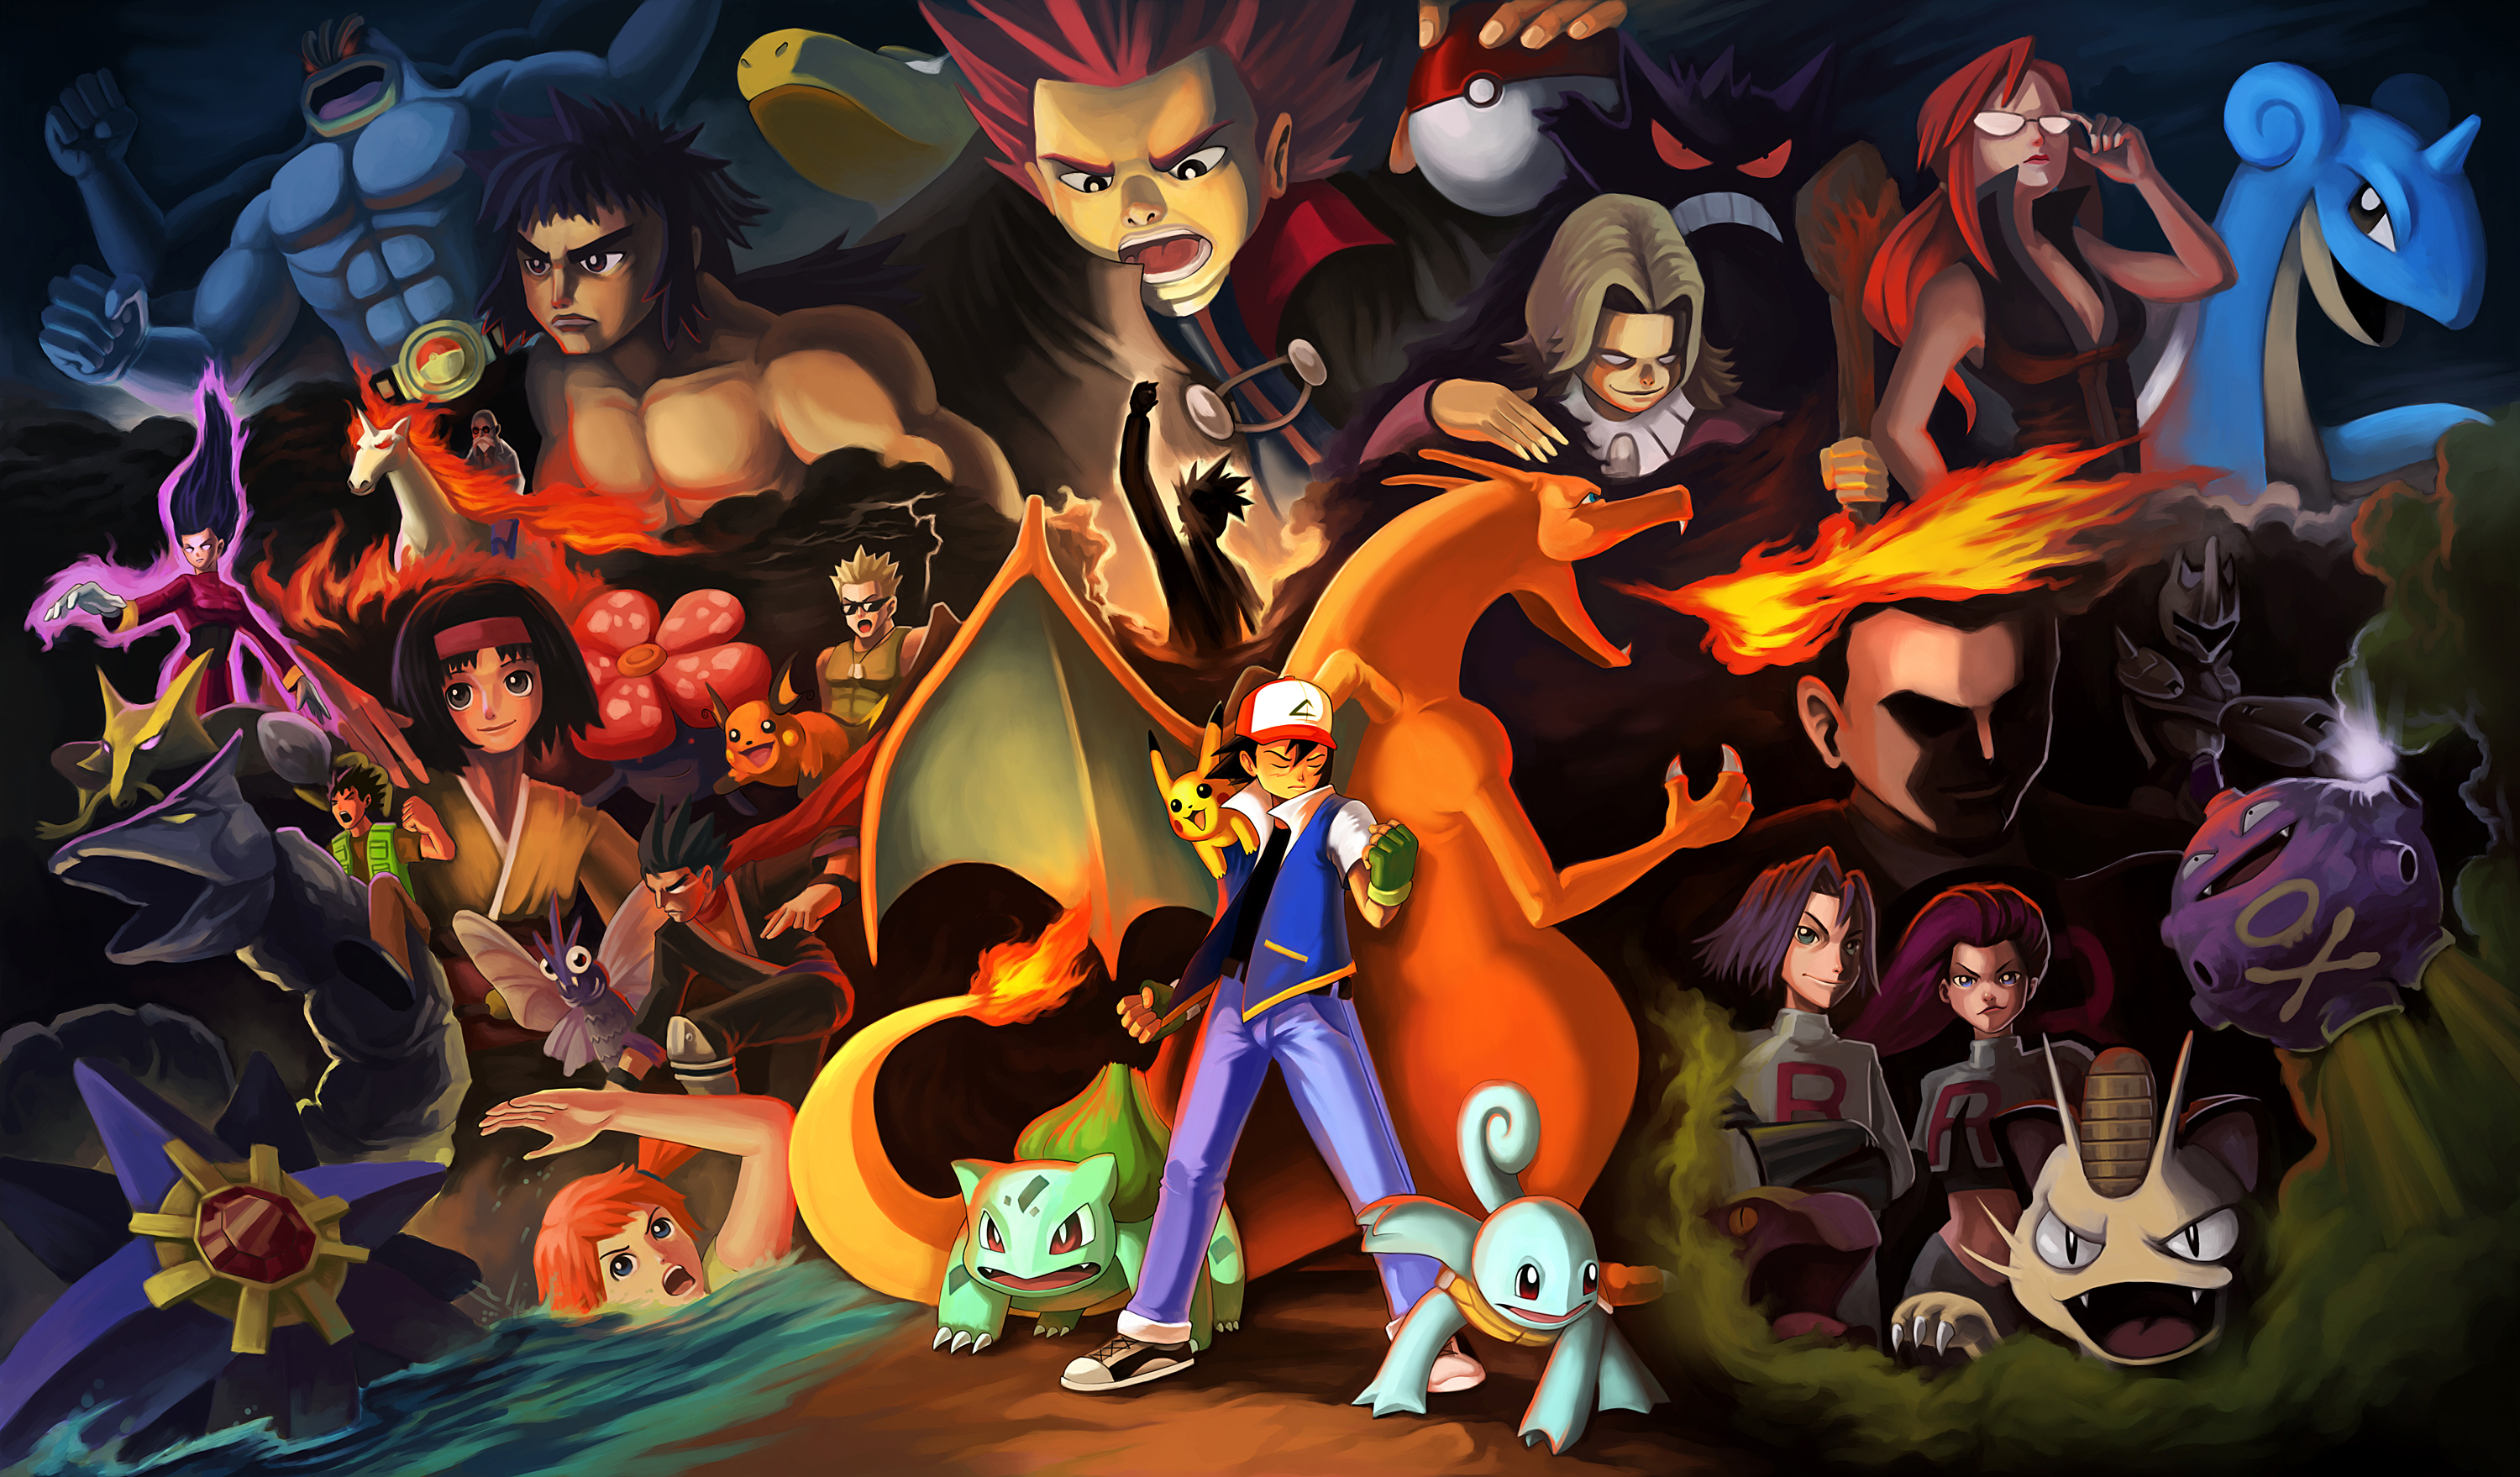 62 ash pok mon hd wallpapers backgrounds wallpaper abyss - Ash and pikachu wallpaper ...